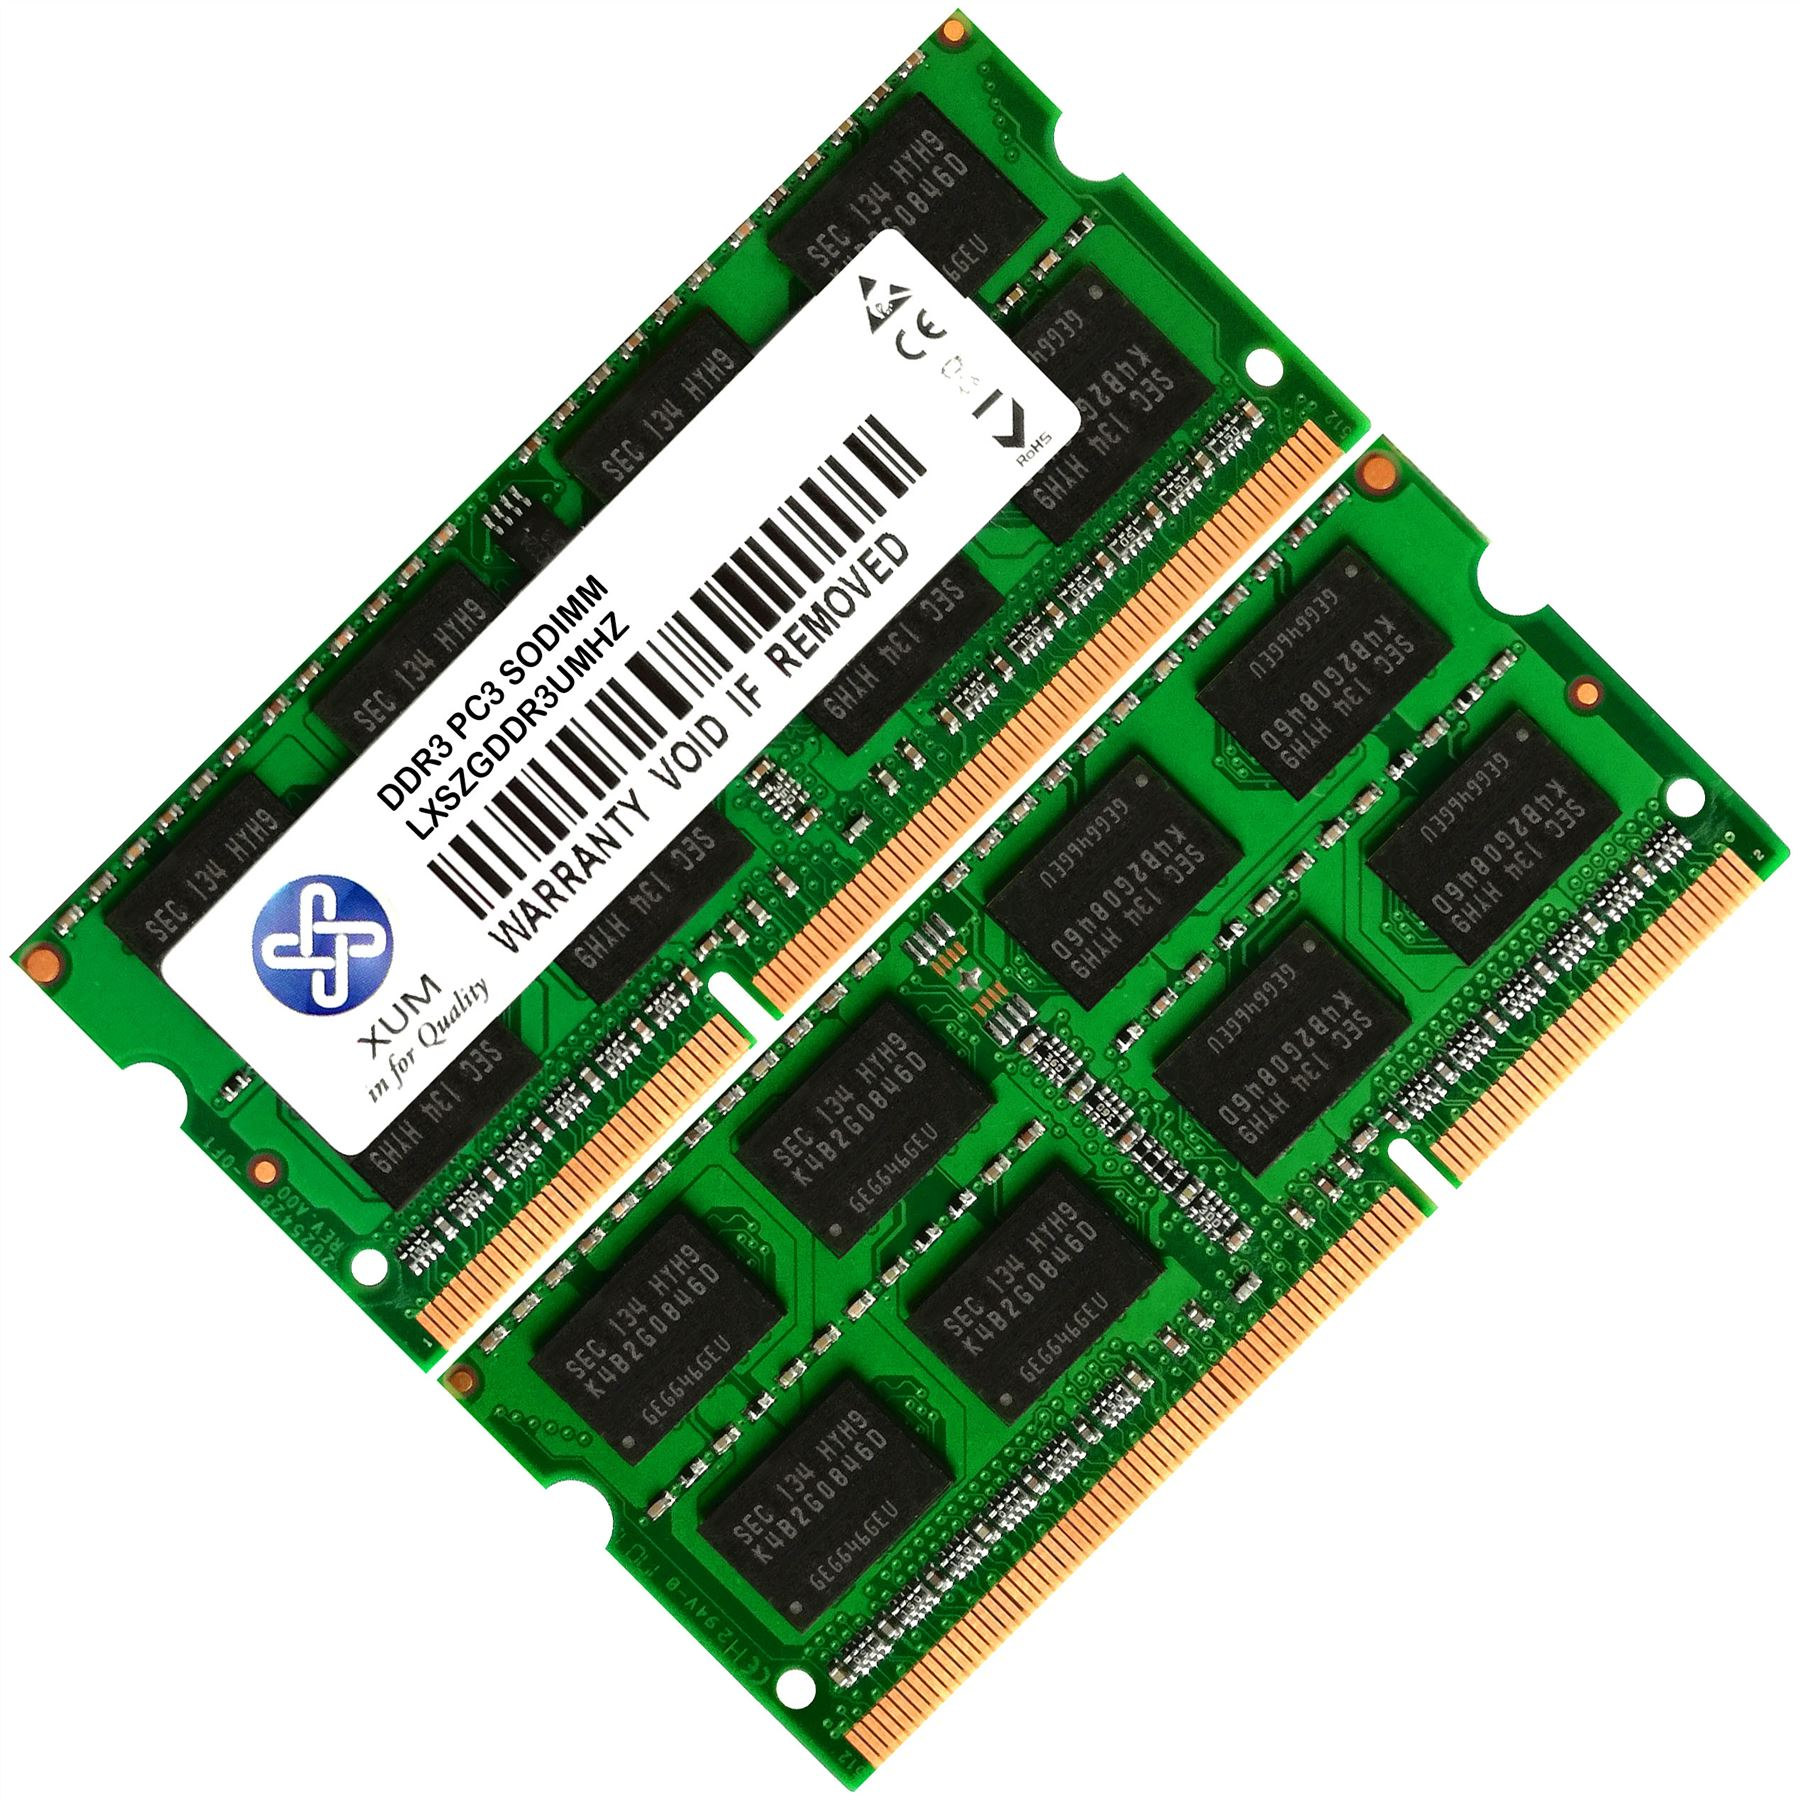 Memoria-Ram-Toshiba-Satellite-Laptop-L70-B-12T-L70-B-12U-Nuevo-Lot-DDR3